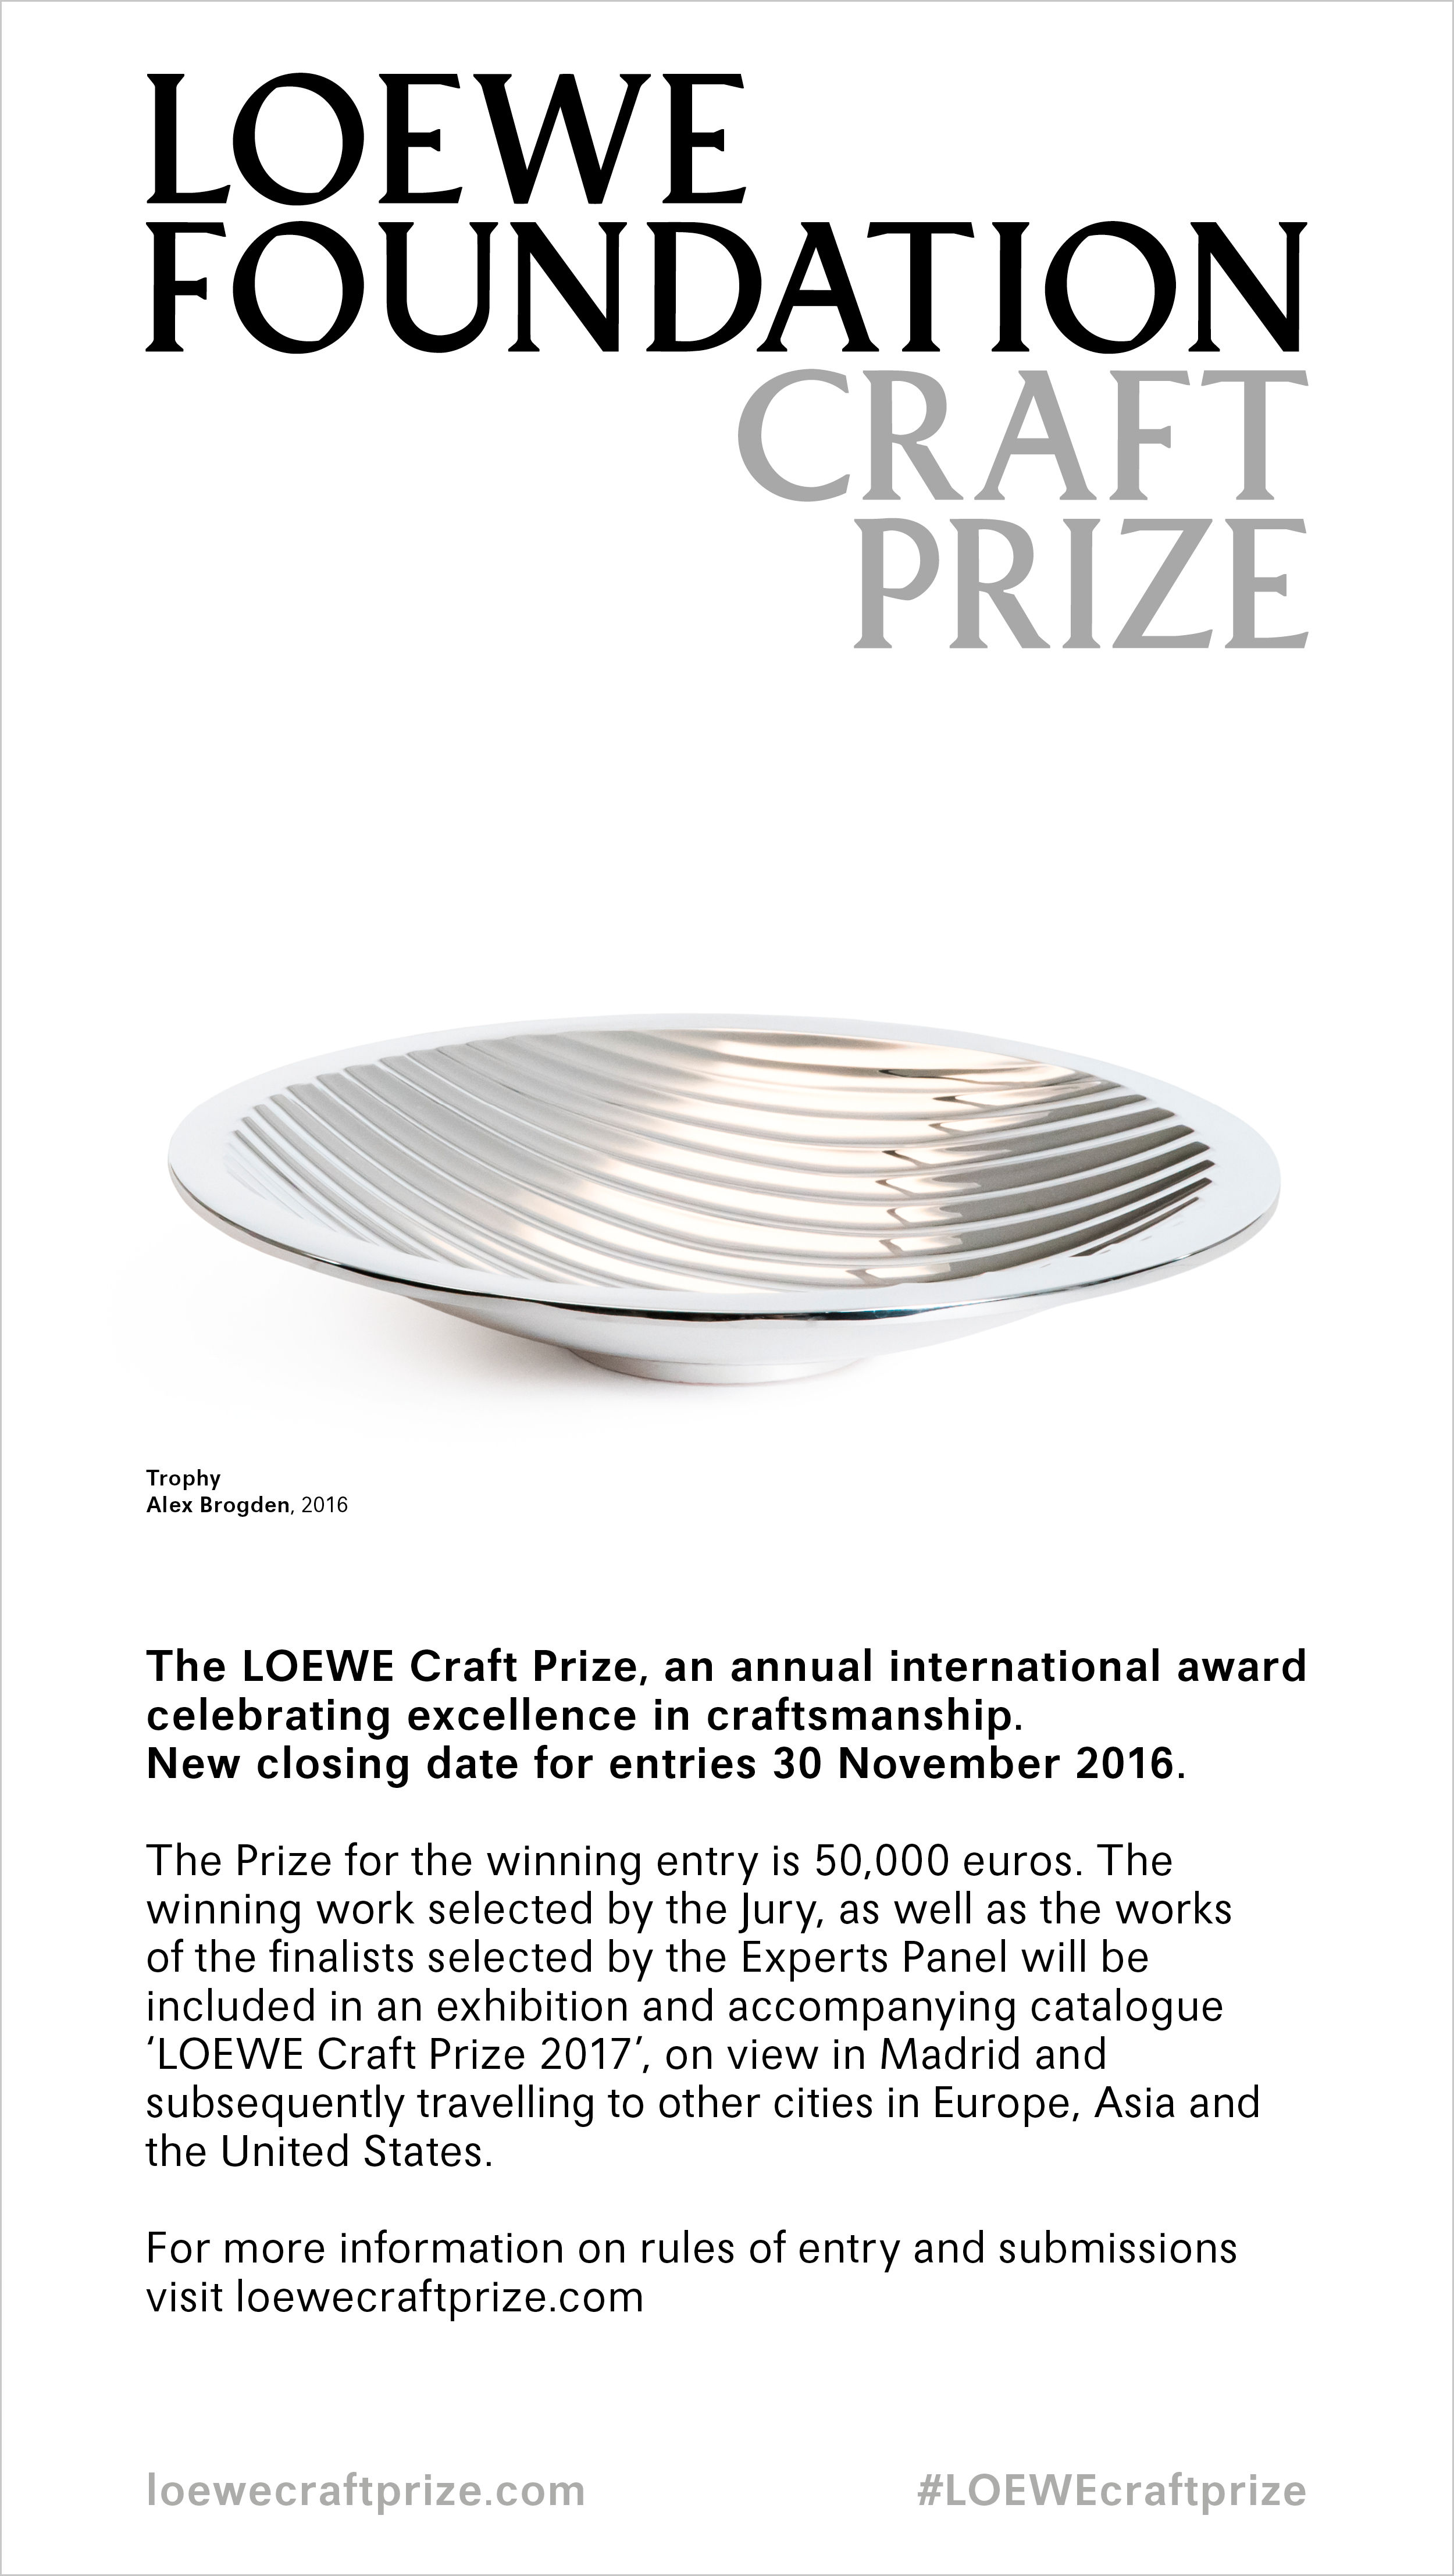 loewe-craft-prize-new-closing-date